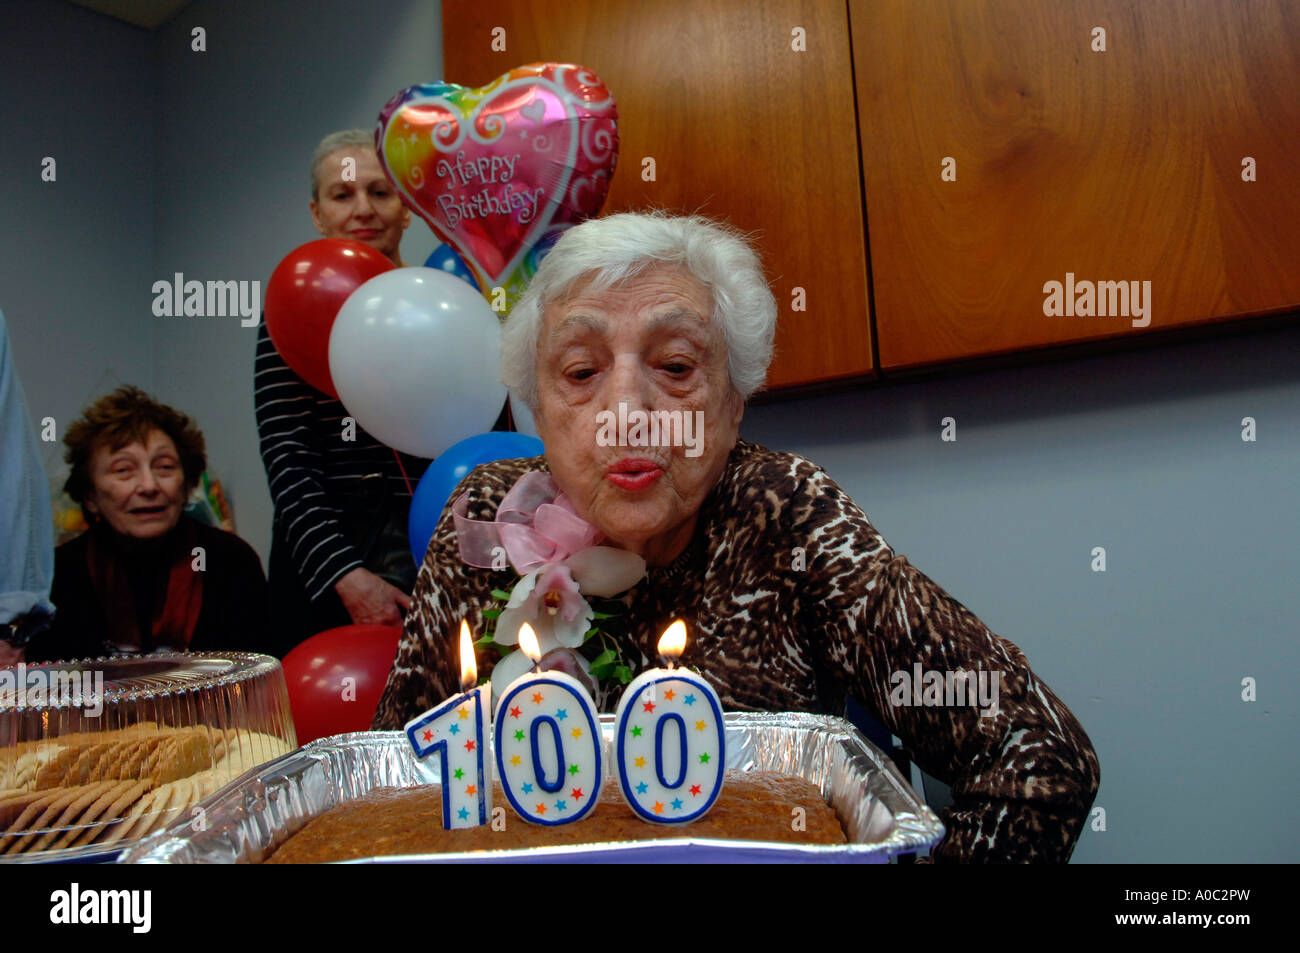 100 Year Old Woman Blows Out Candles On Her Birthday Cake